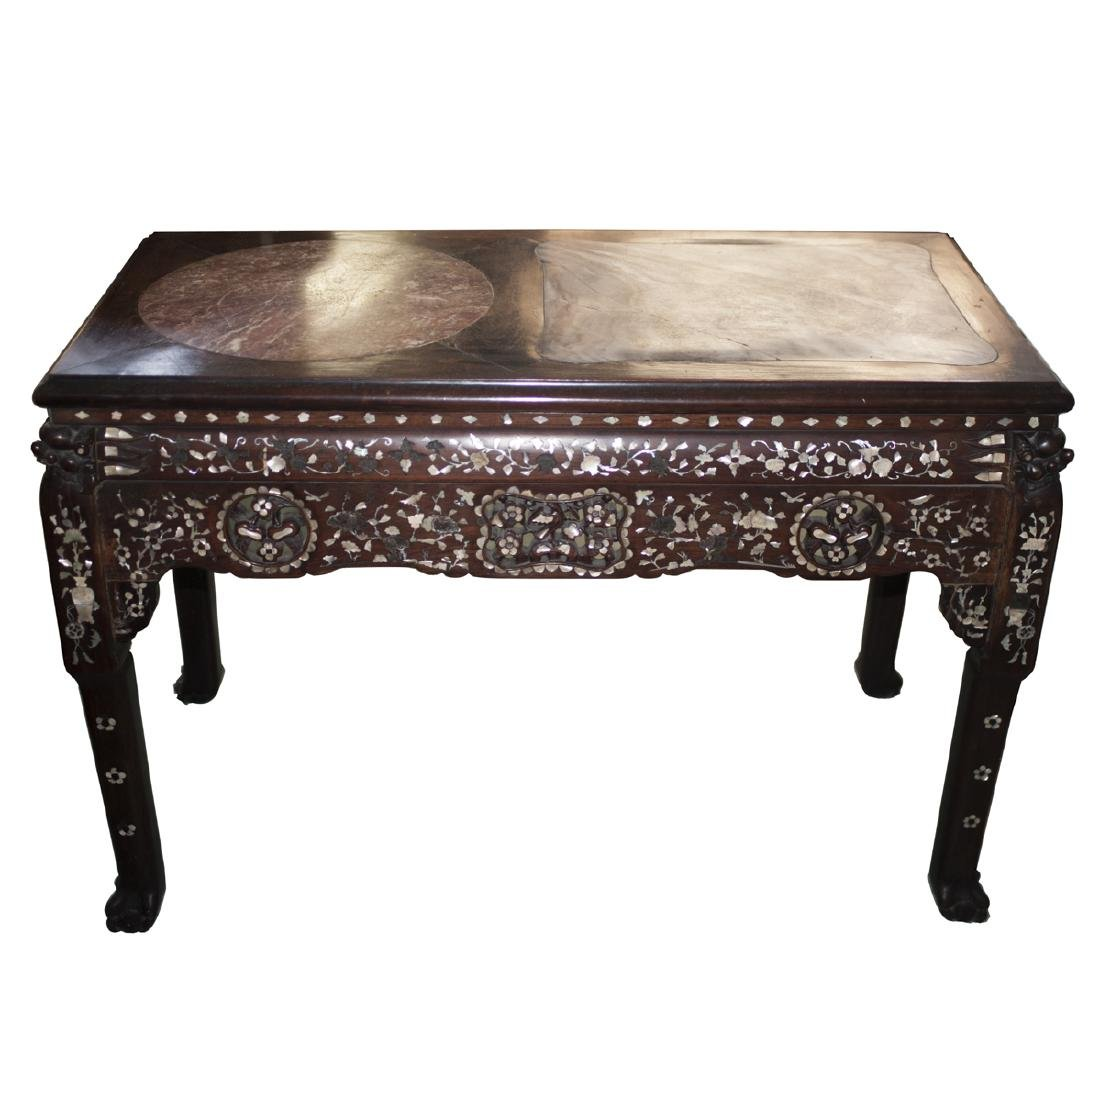 Chinese Rosewood Inlaid Mother of Pearl Console Table